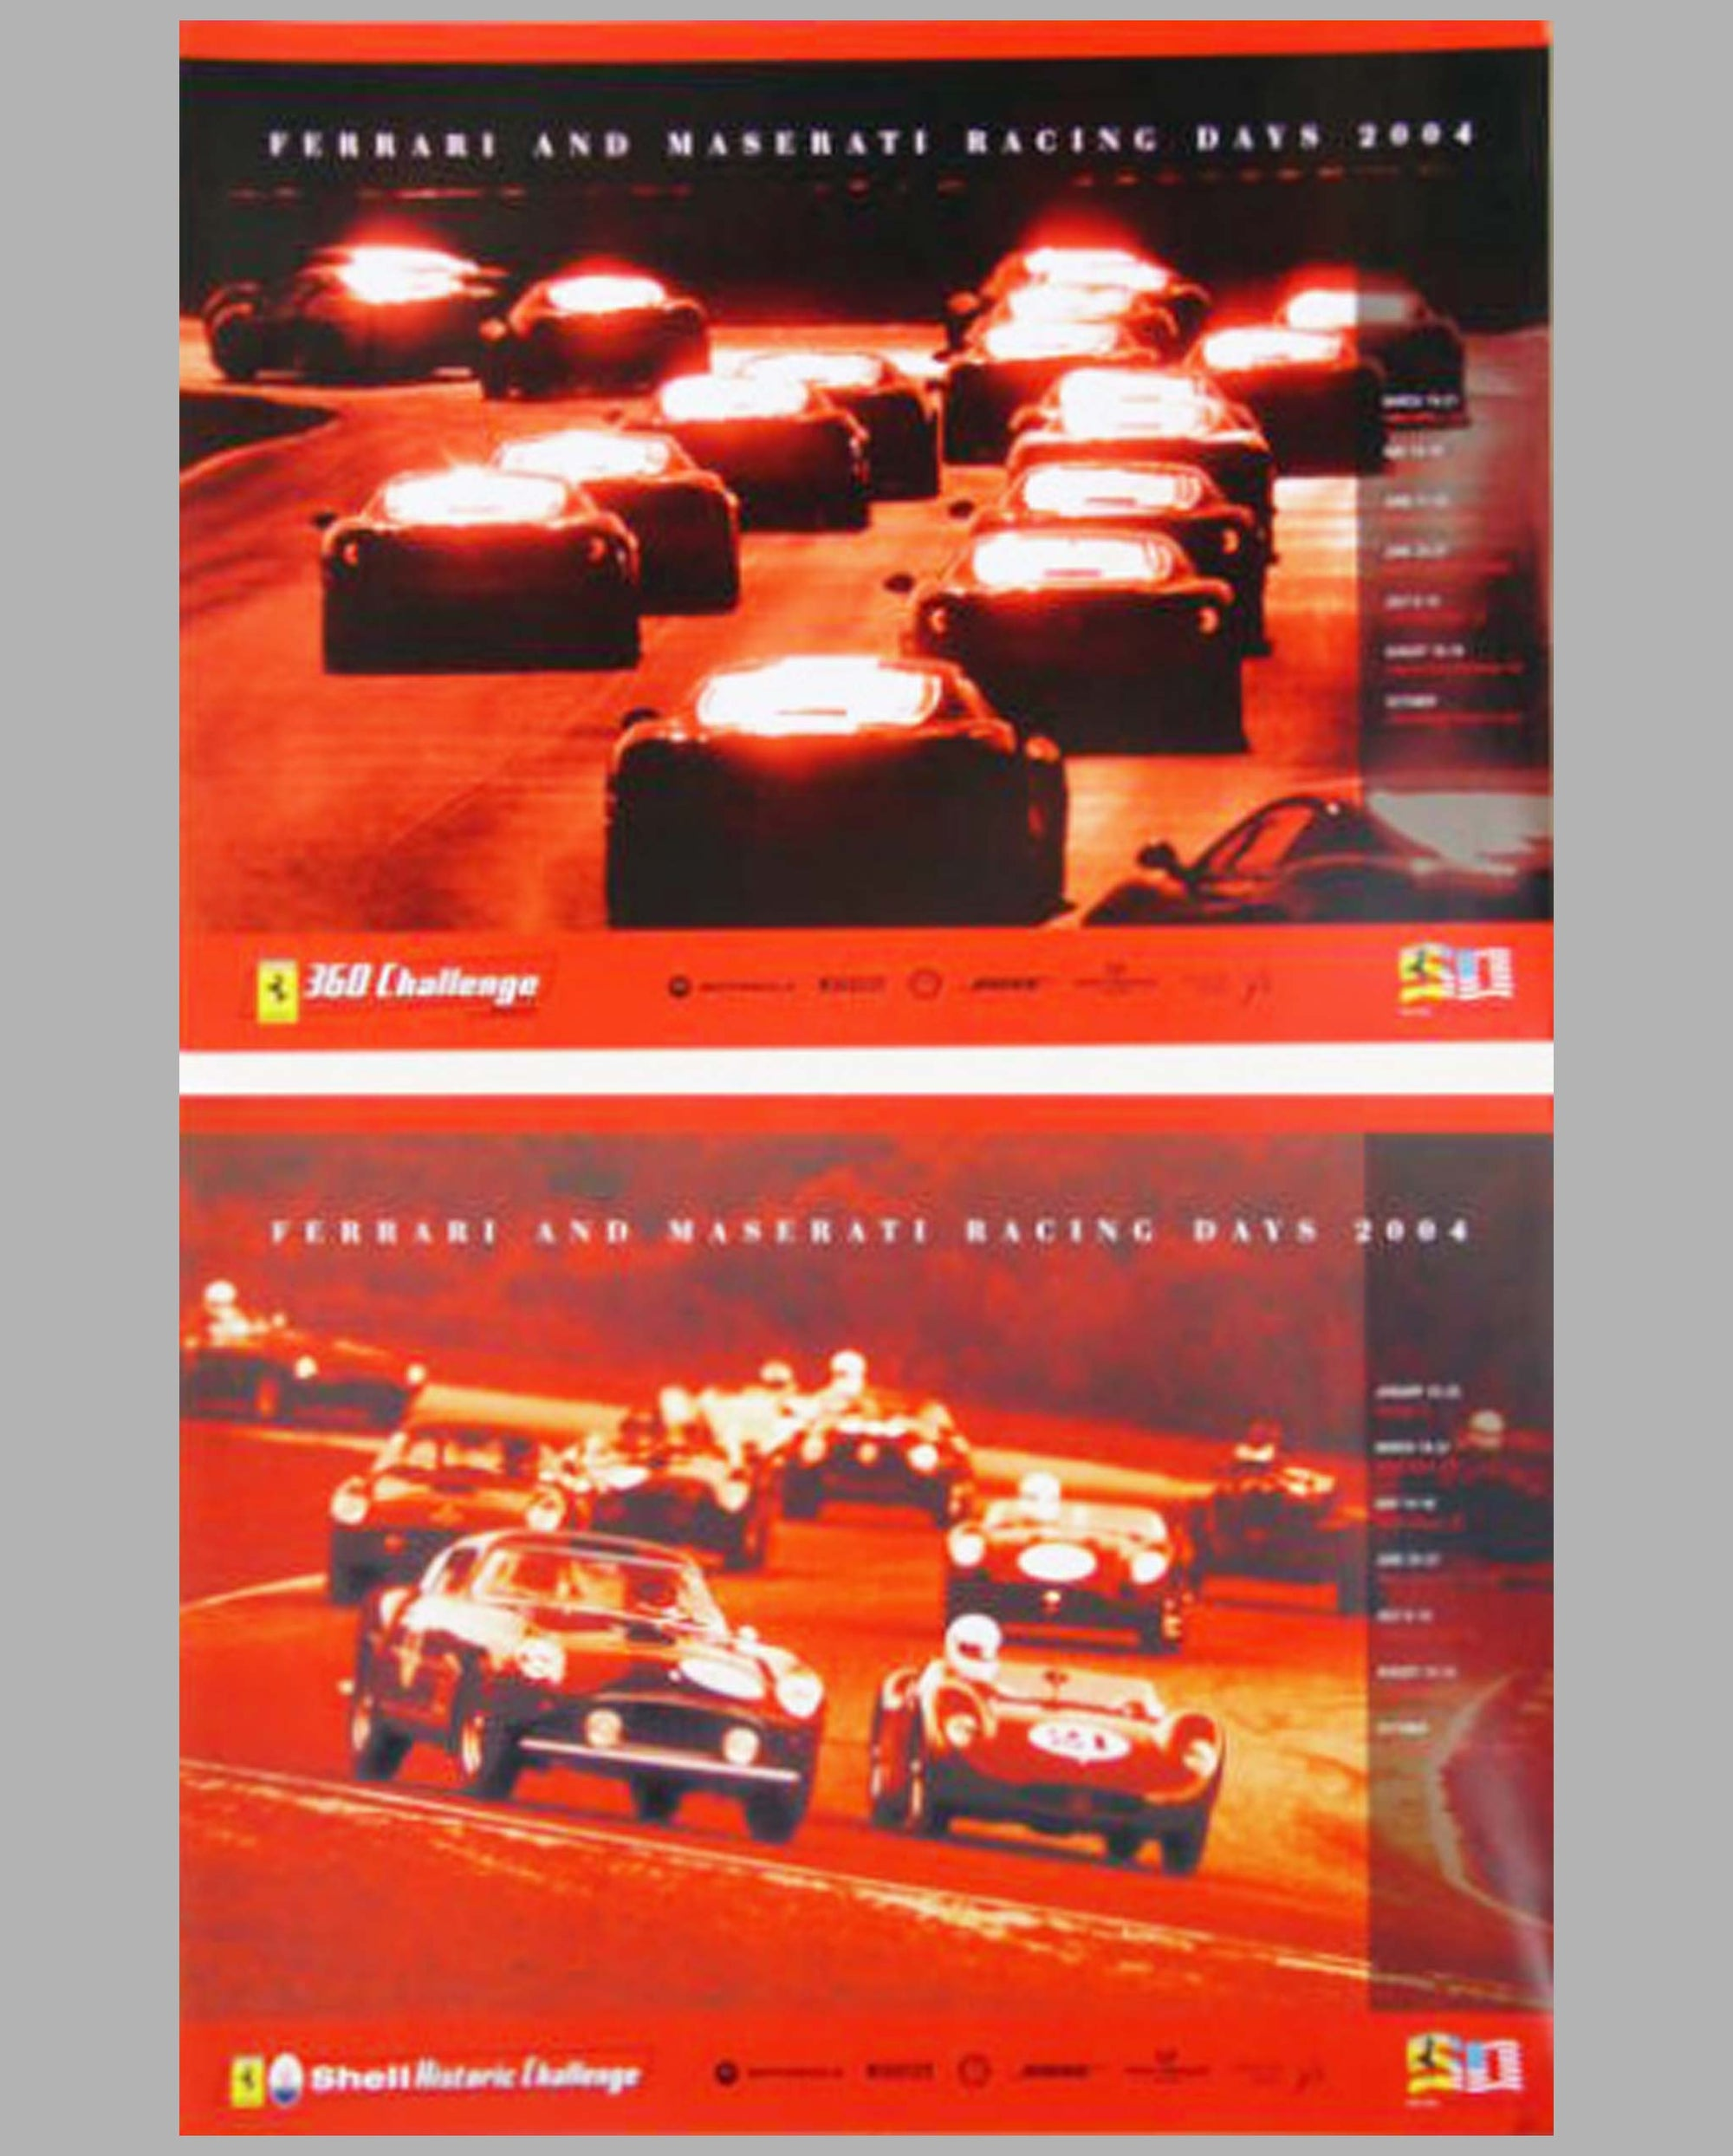 Two Ferrari & Maserati Racing Days 2004 official event posters